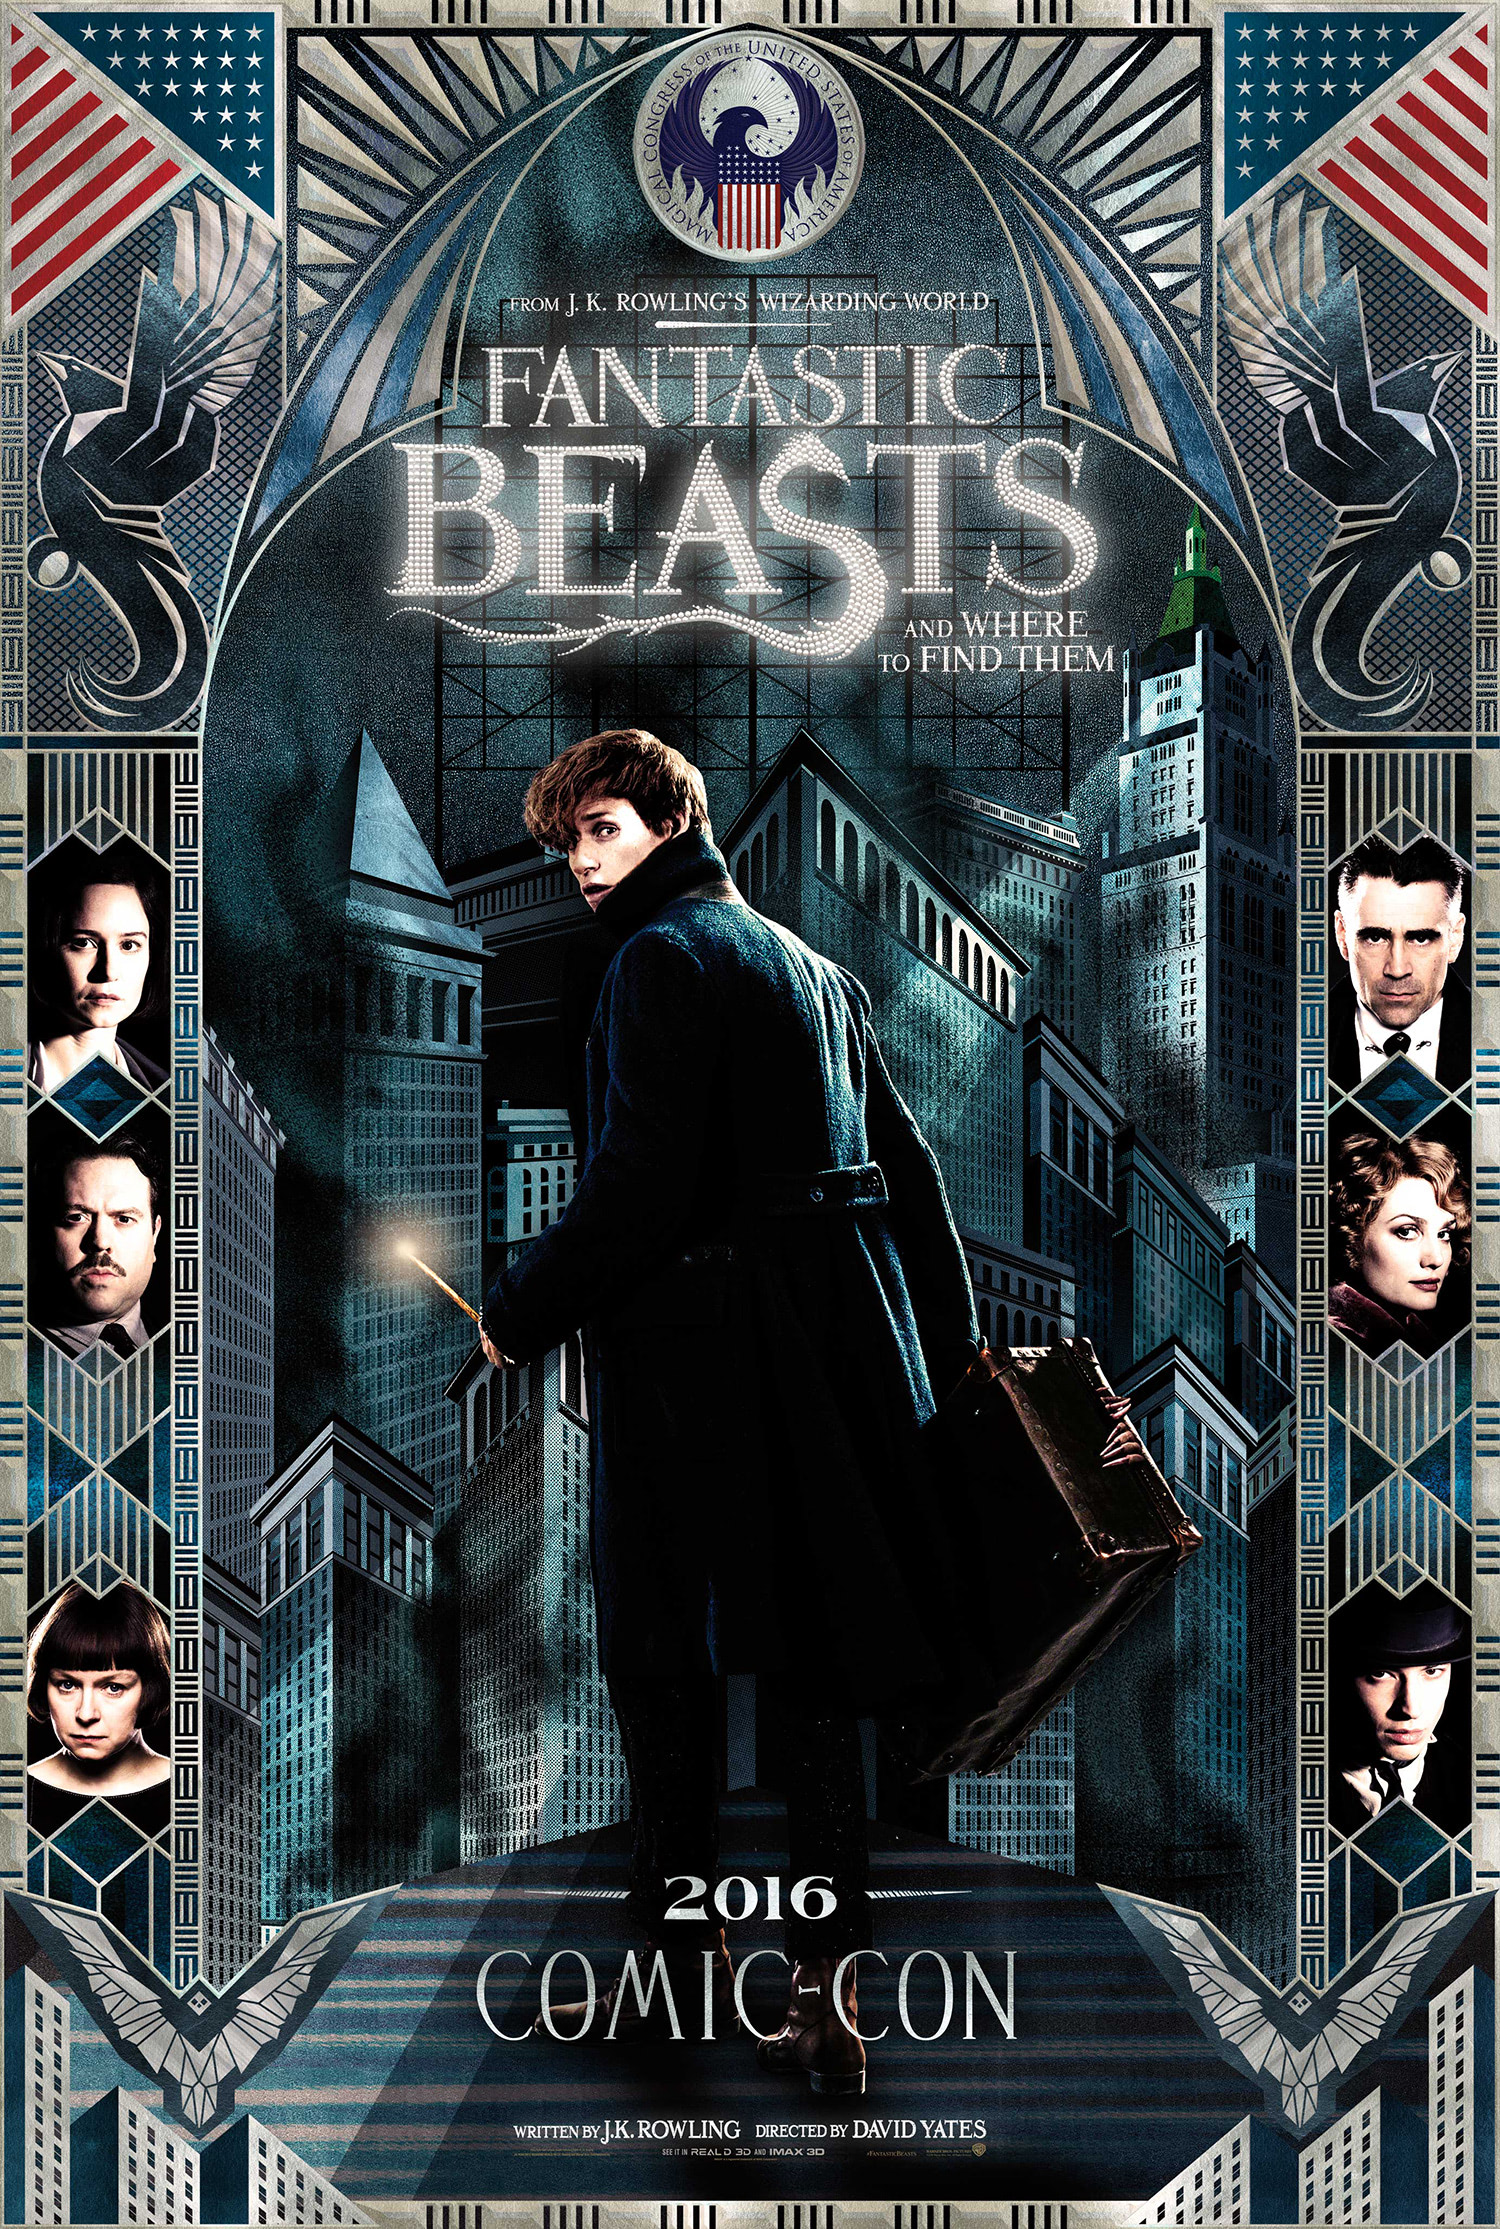 'Fantastic Beasts' Comic Con poster